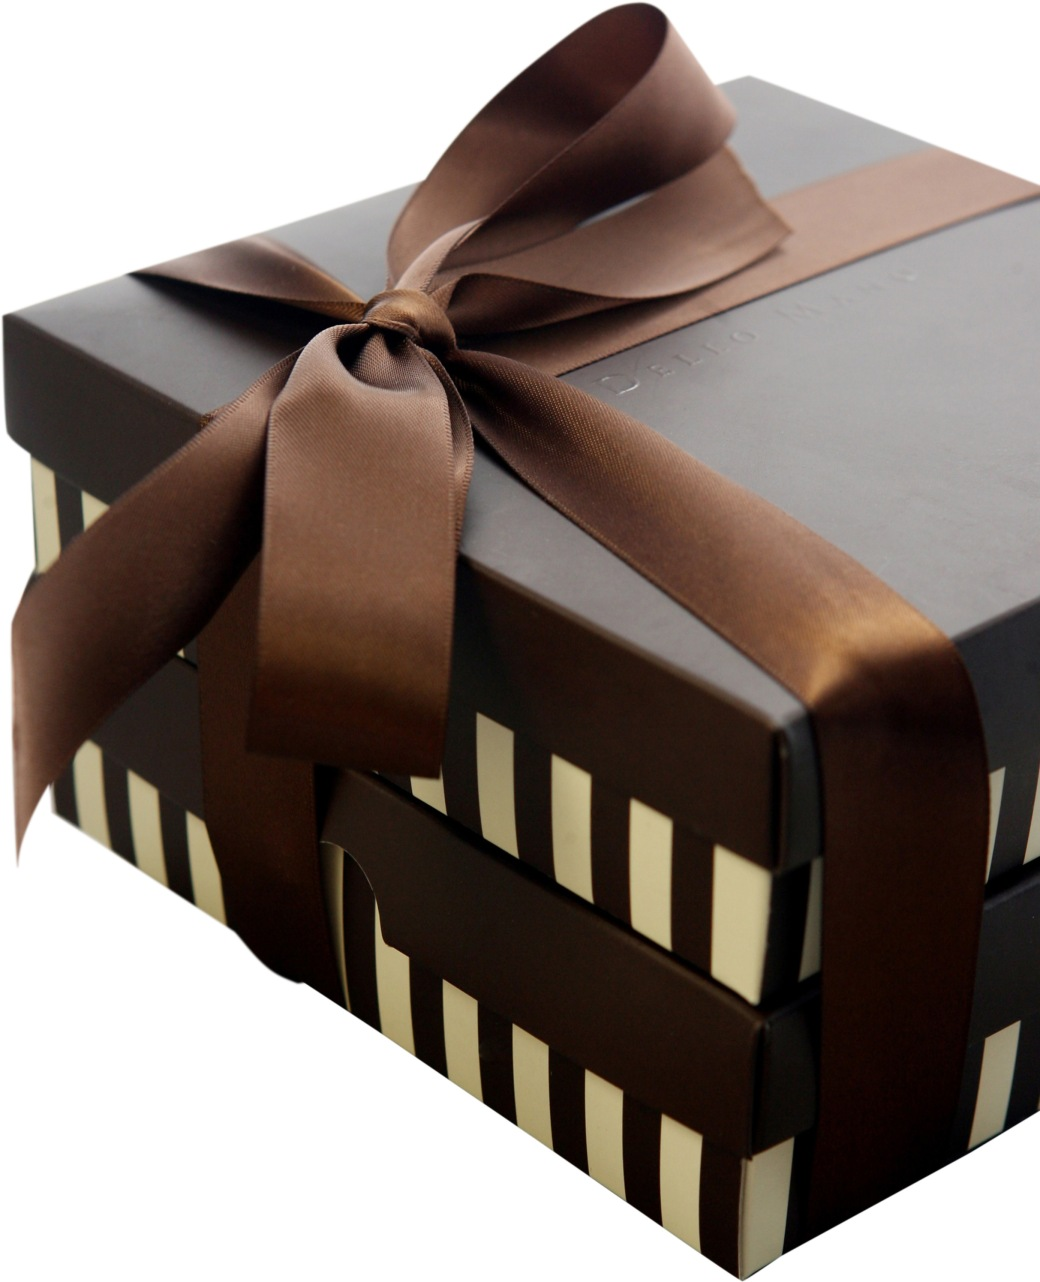 Dello Mano Brownie Gift Boxes